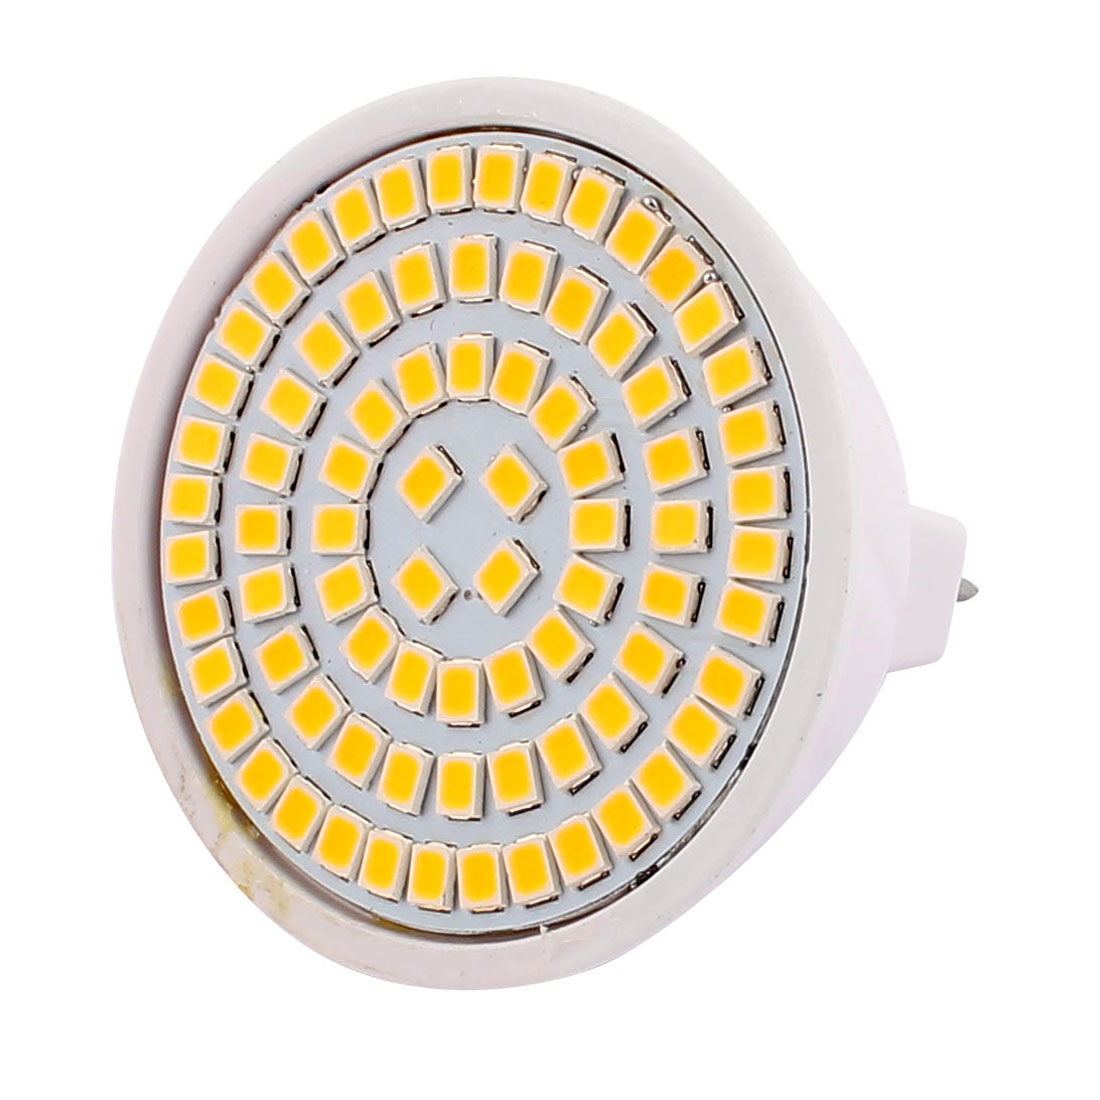 MR16 SMD 2835 80 LEDs Plastic Energy-Saving LED Lamp Bulb WarmWhite AC 220V 8W